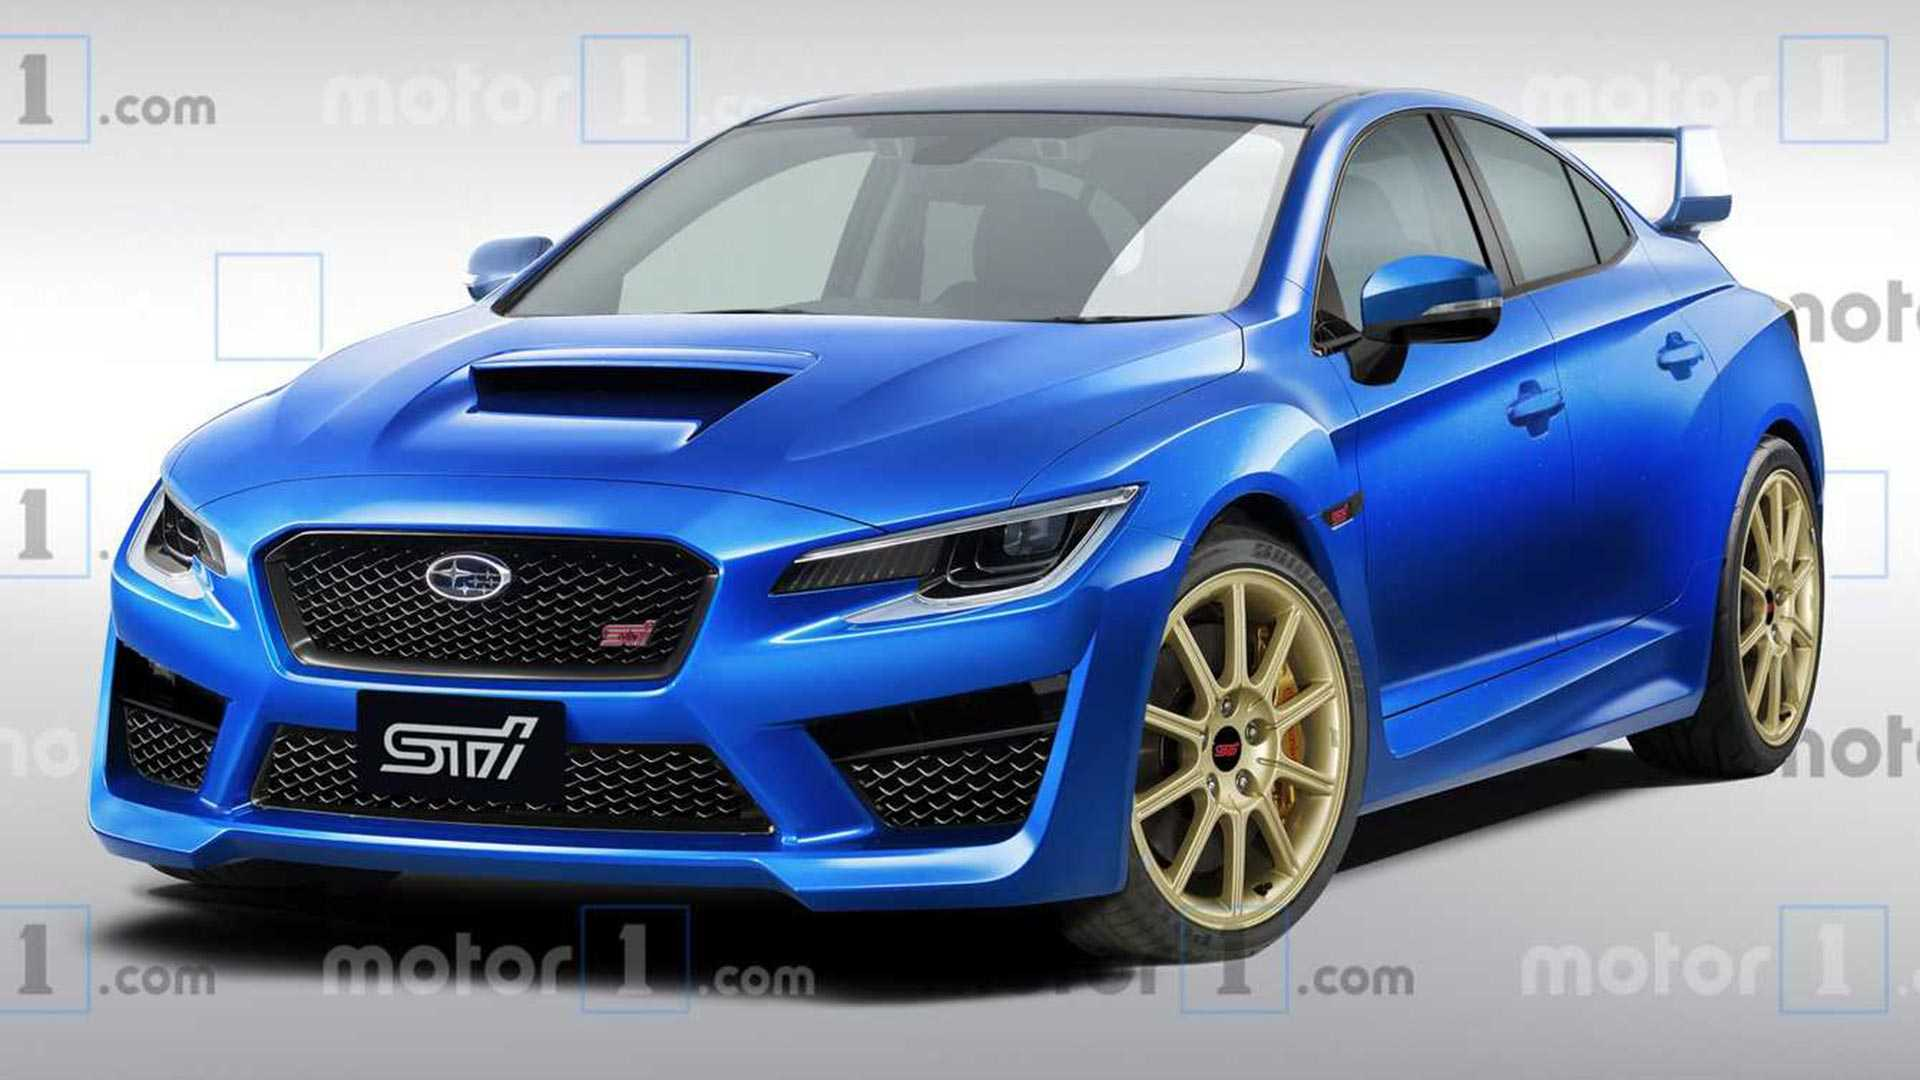 48 Great 2020 Subaru Sti Engine Ratings with 2020 Subaru Sti Engine